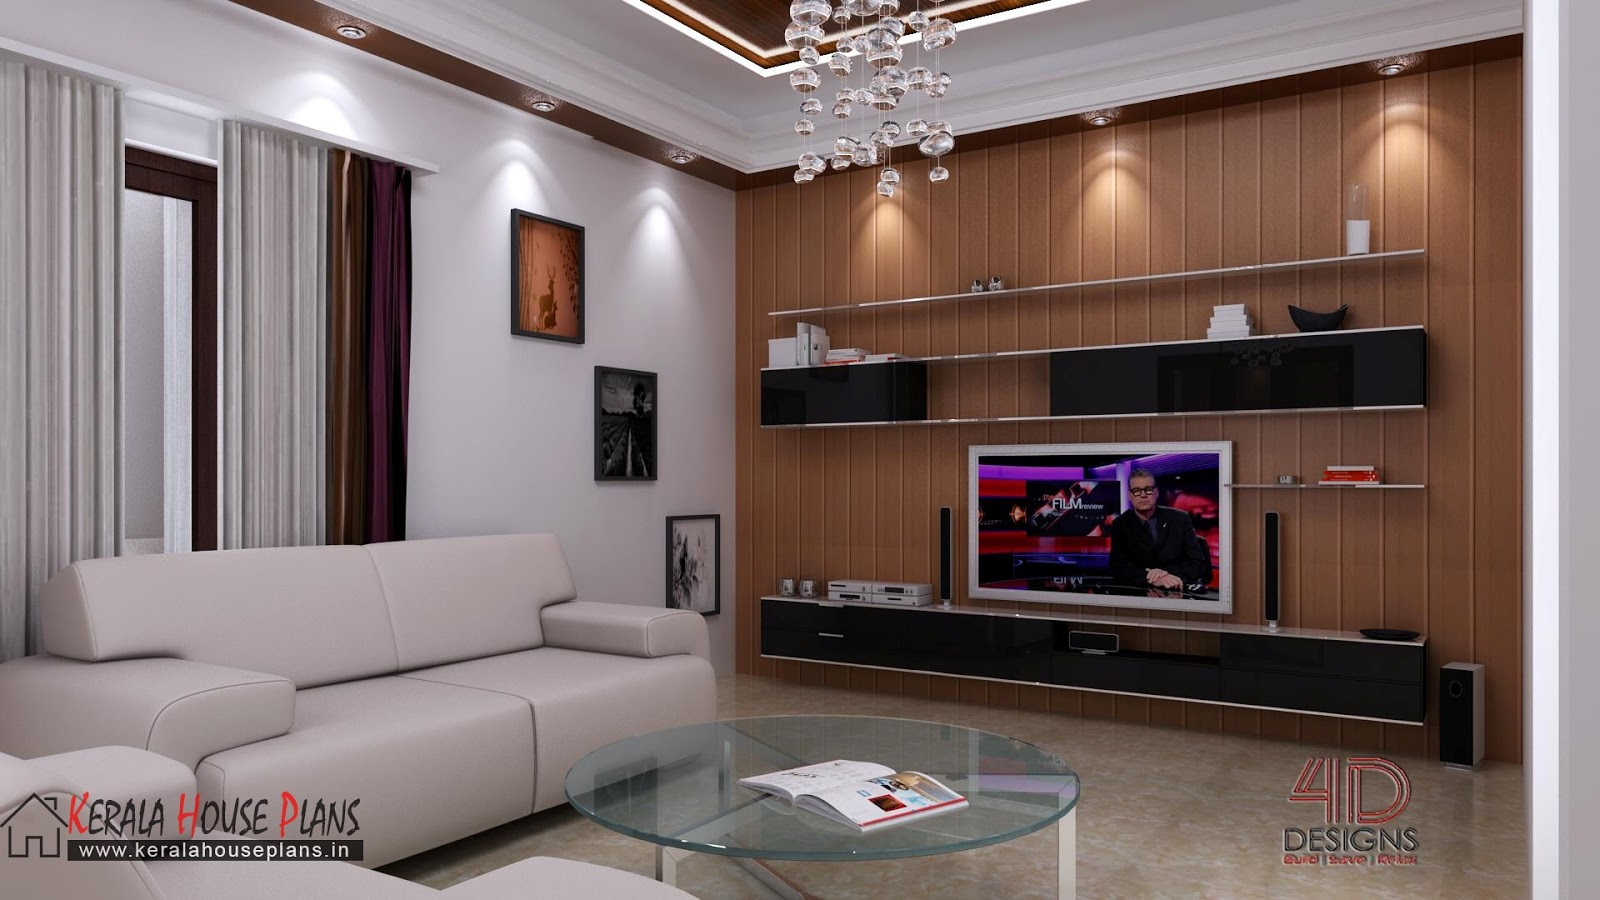 Budget Home Design with Interior Photos living room